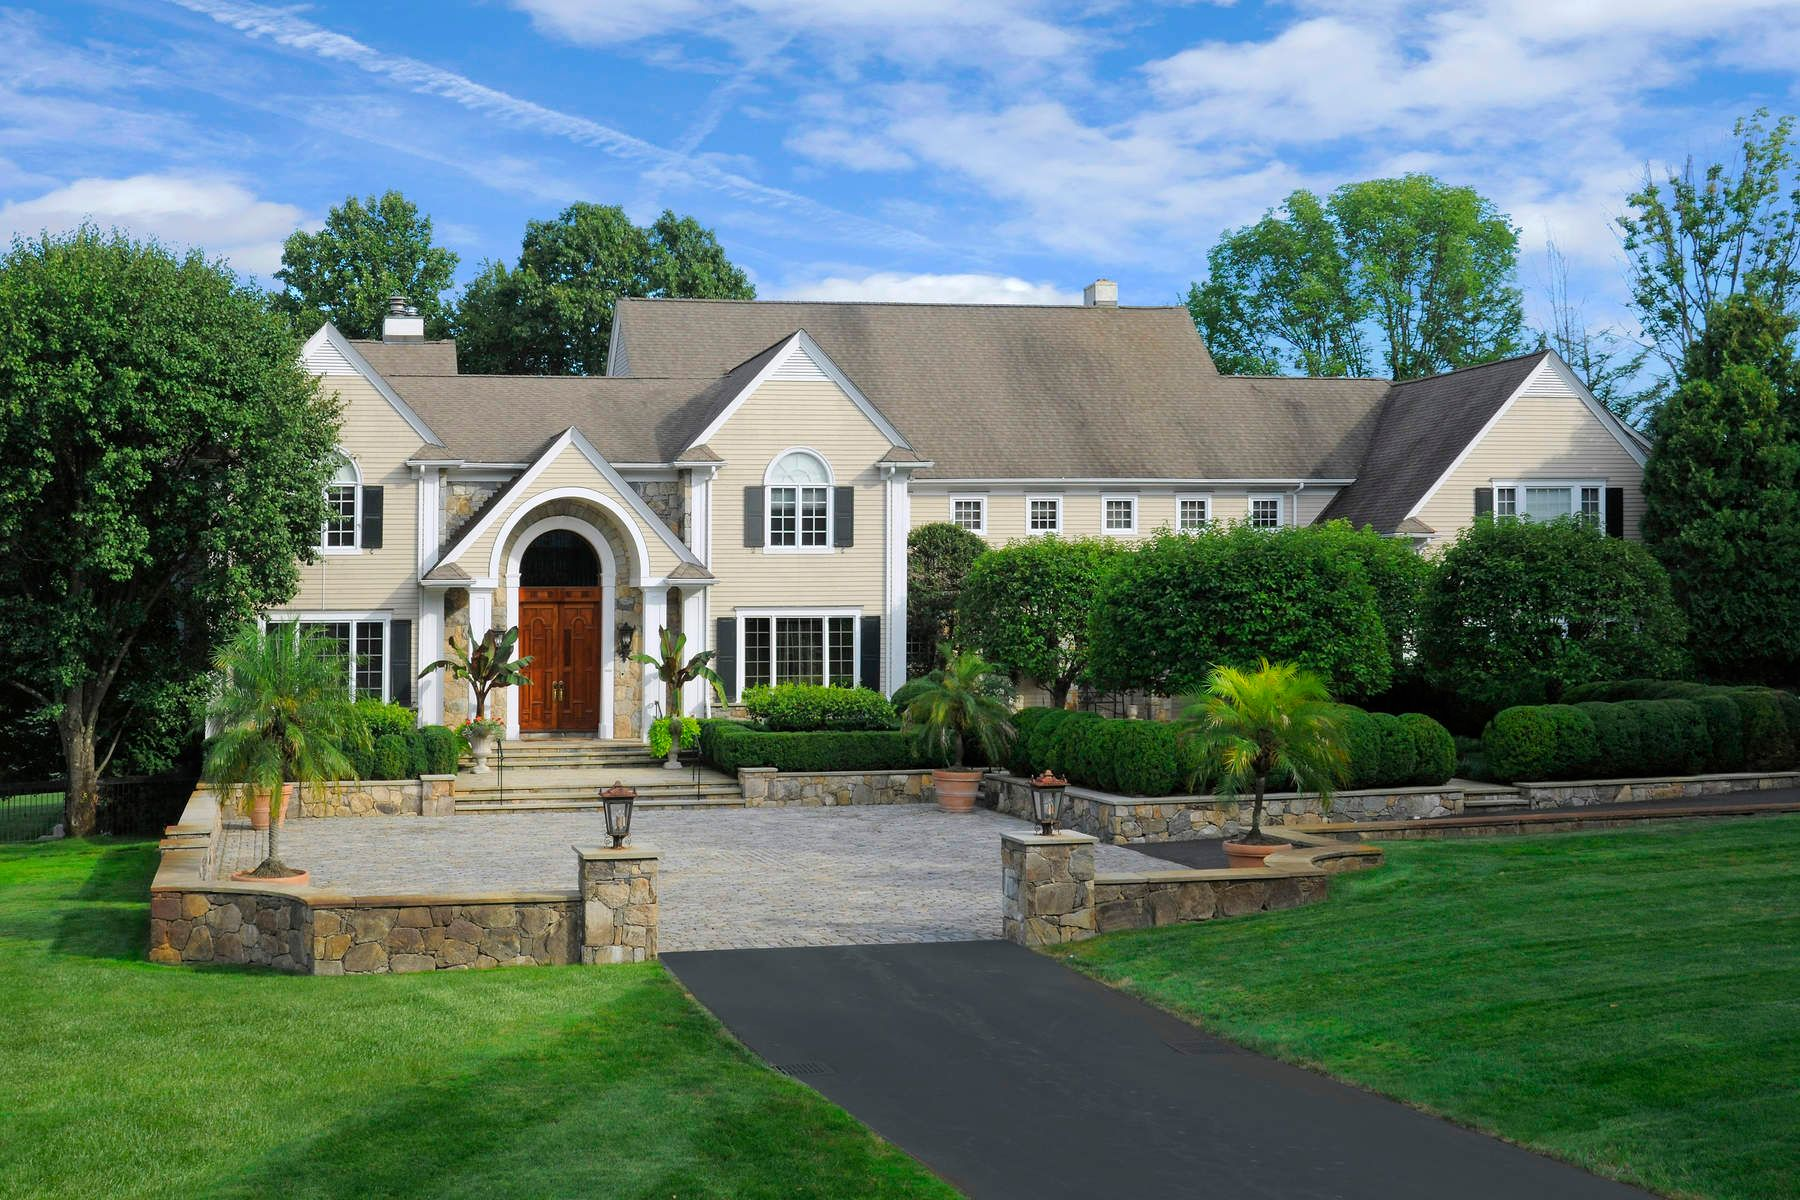 Casa Unifamiliar por un Venta en 10 Deer Meadow Lane 10 Deer Meadow Lane Stamford, Connecticut 06903 Estados Unidos